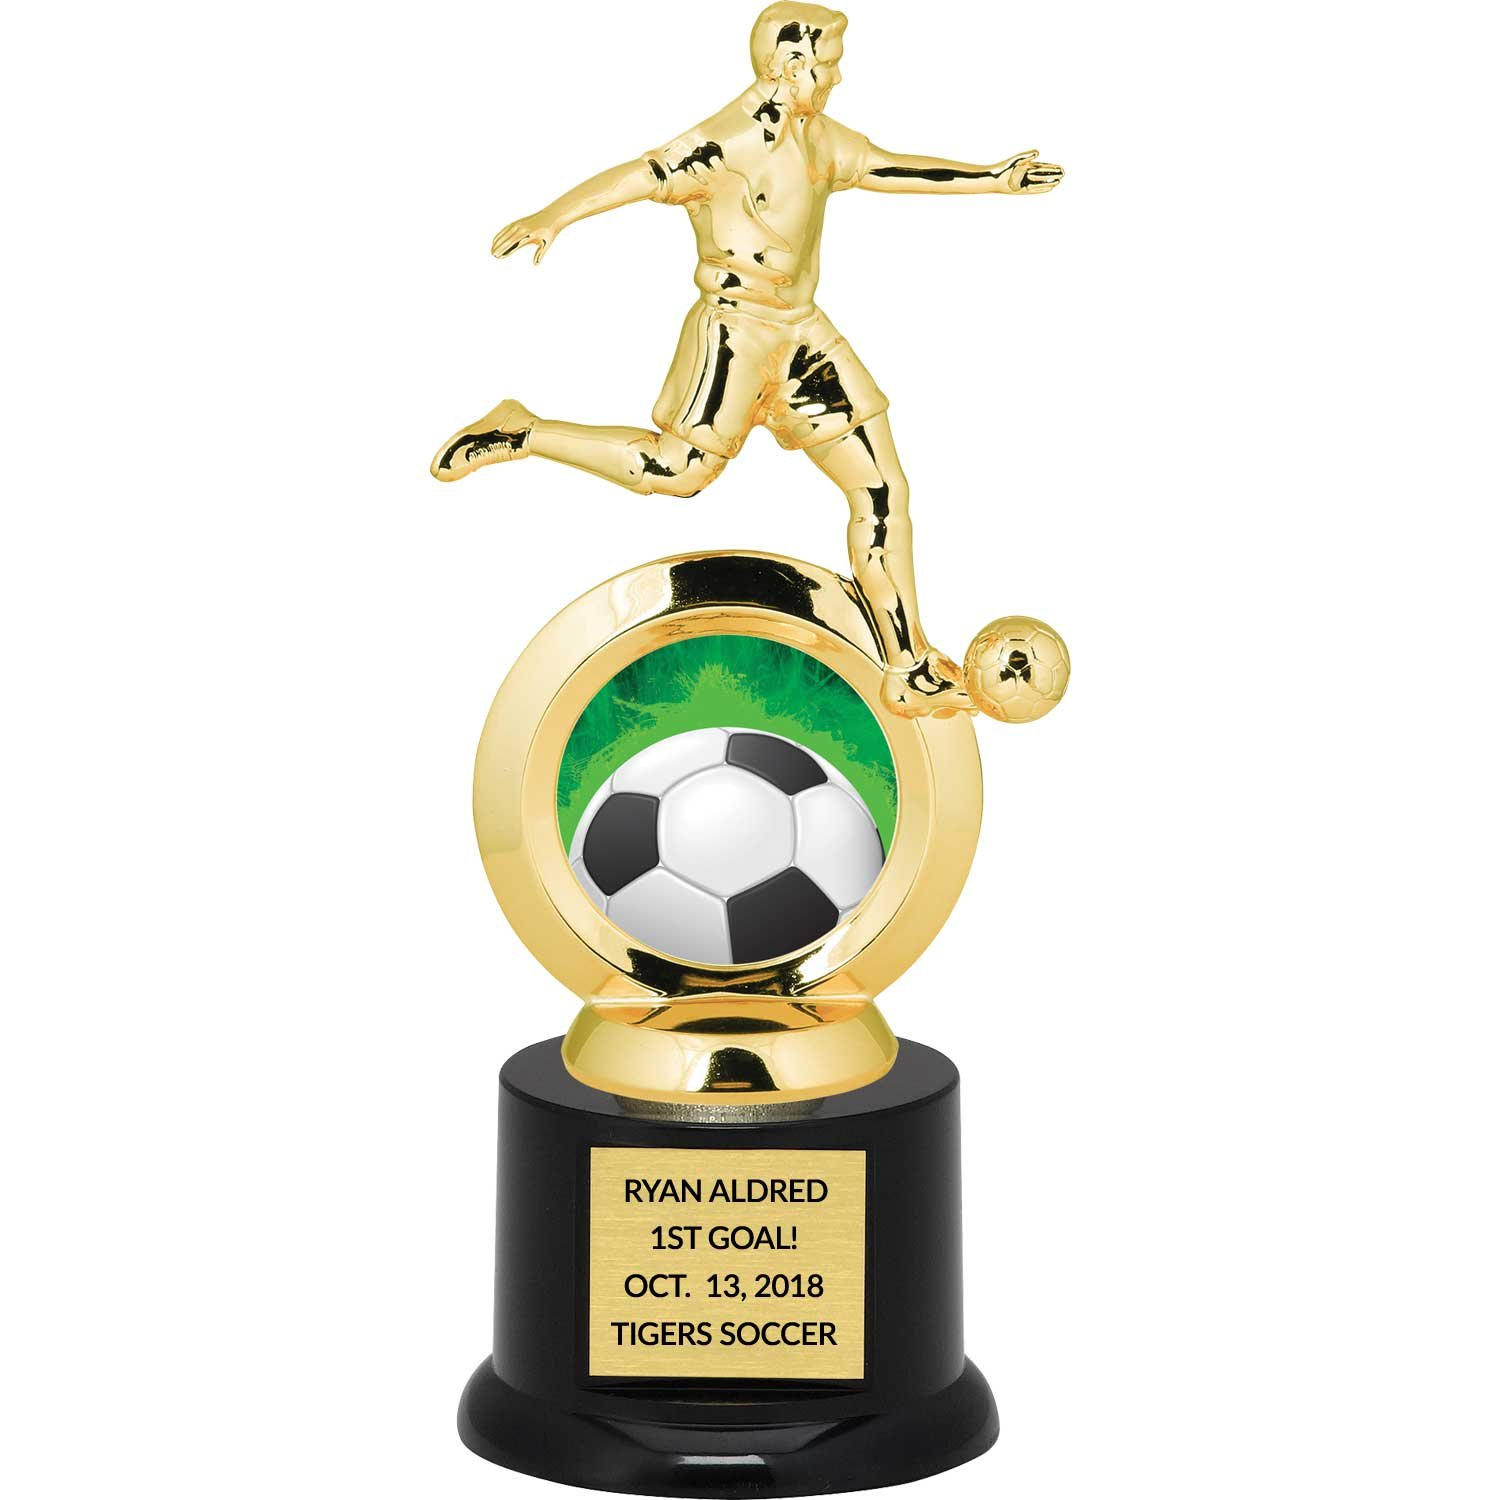 DINN BROS., INC. ''THE TROPHY PEOPLE'' Boy's Soccer Trophy with Free Engraving